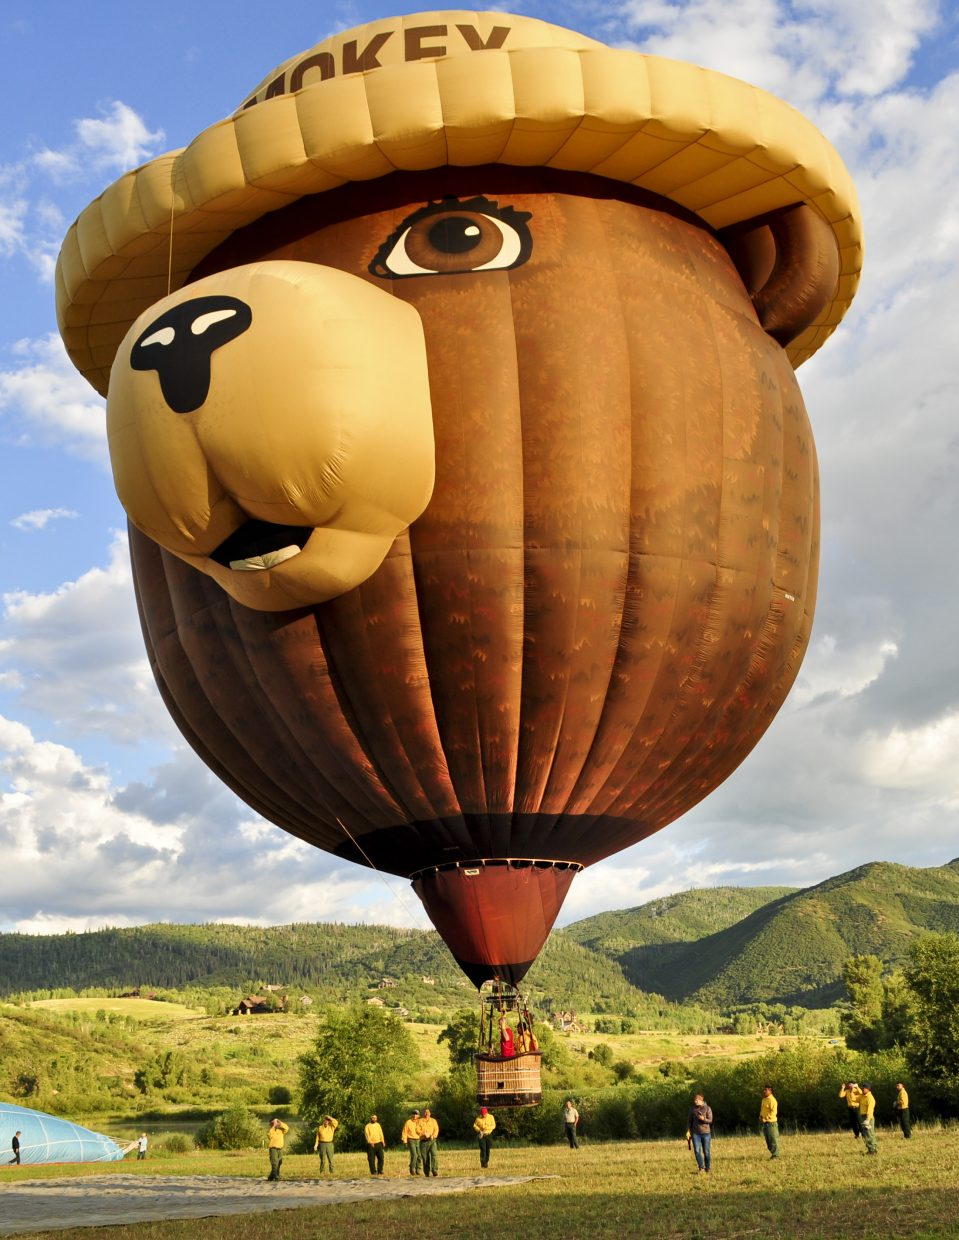 Smokey Bear Balloon is hauled over to a launch spot by a crew of wildland firefighters from Washington who were stationed at the Spring Fire. They were pre-positioned to fight fires while the fire danger was high in Northwest Colorado.